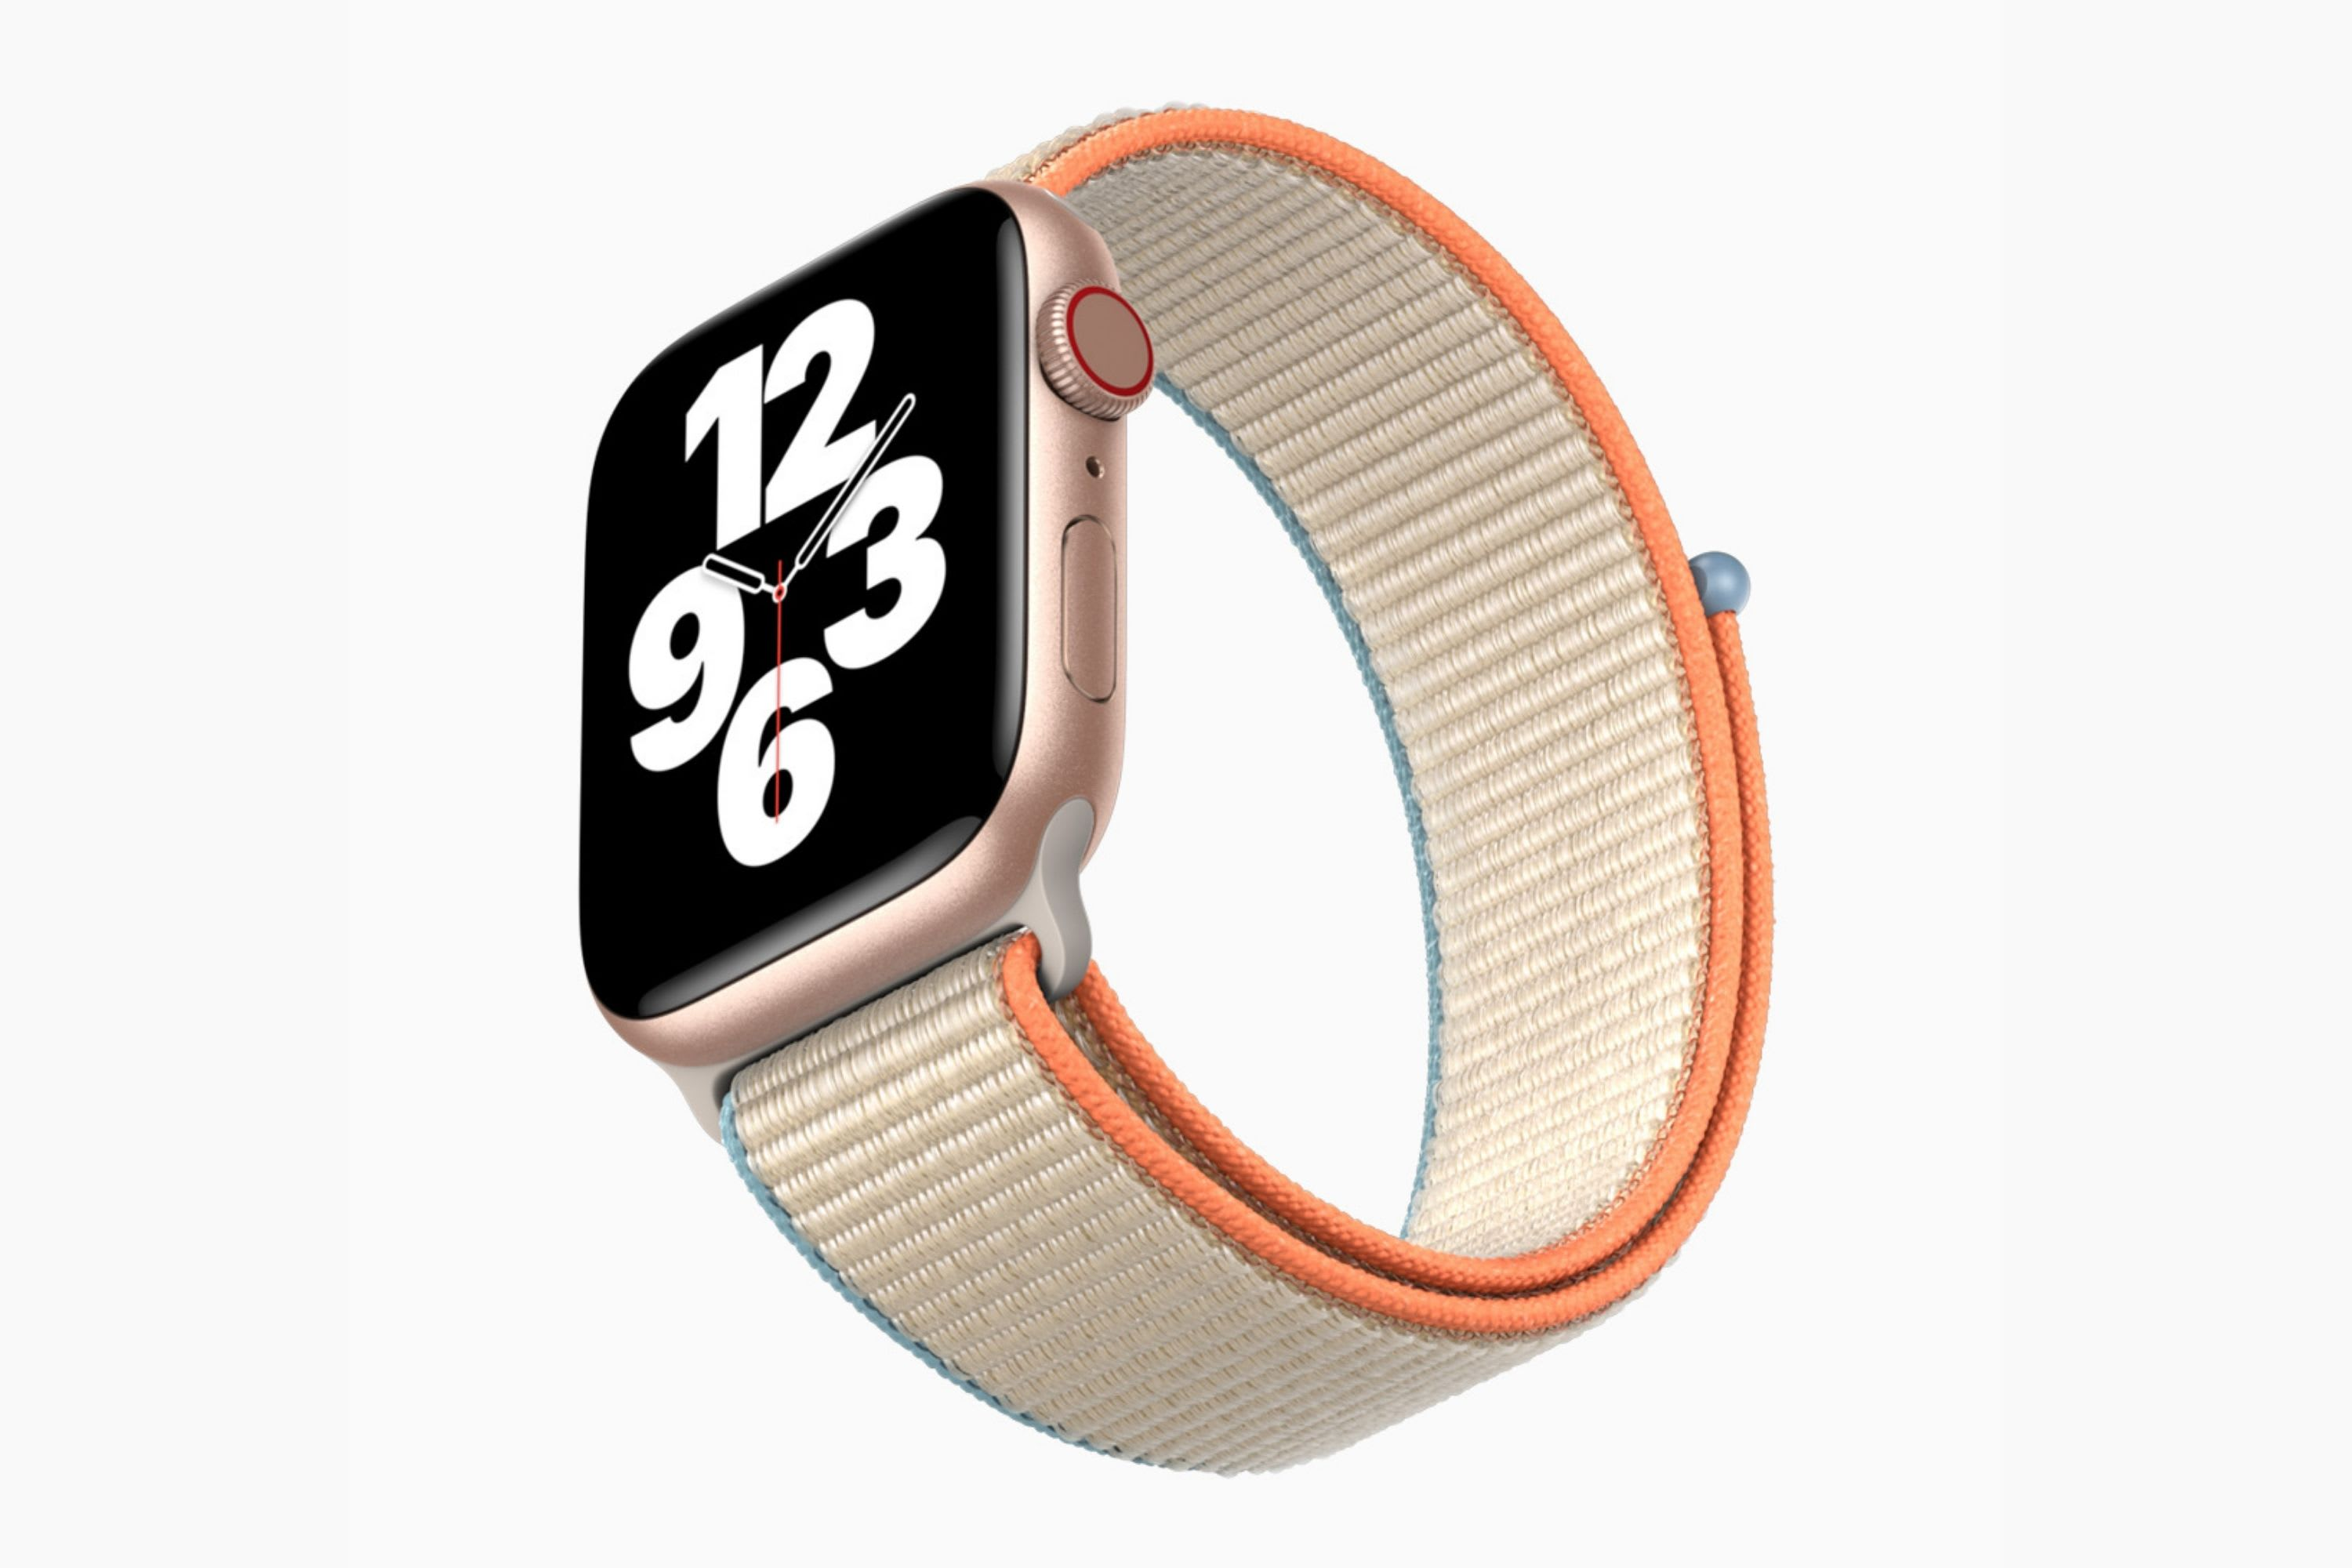 apple-watch-se-sports-s5-system-and-prioritizes-health-safety-and-fitness-like-the-watch-series-20200915-2